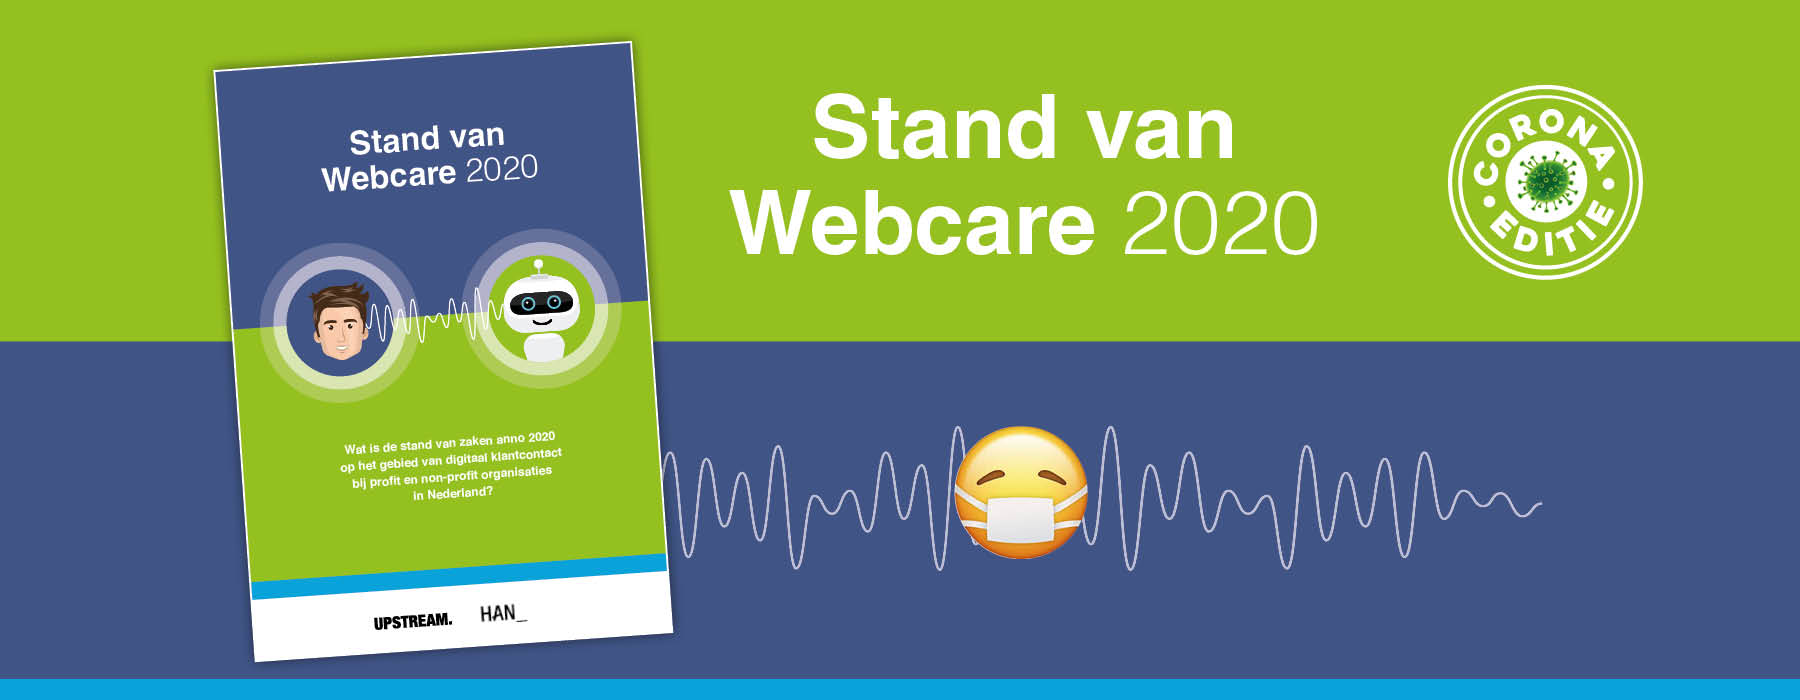 Wat is de stand van webcare anno 2020 in Nederland